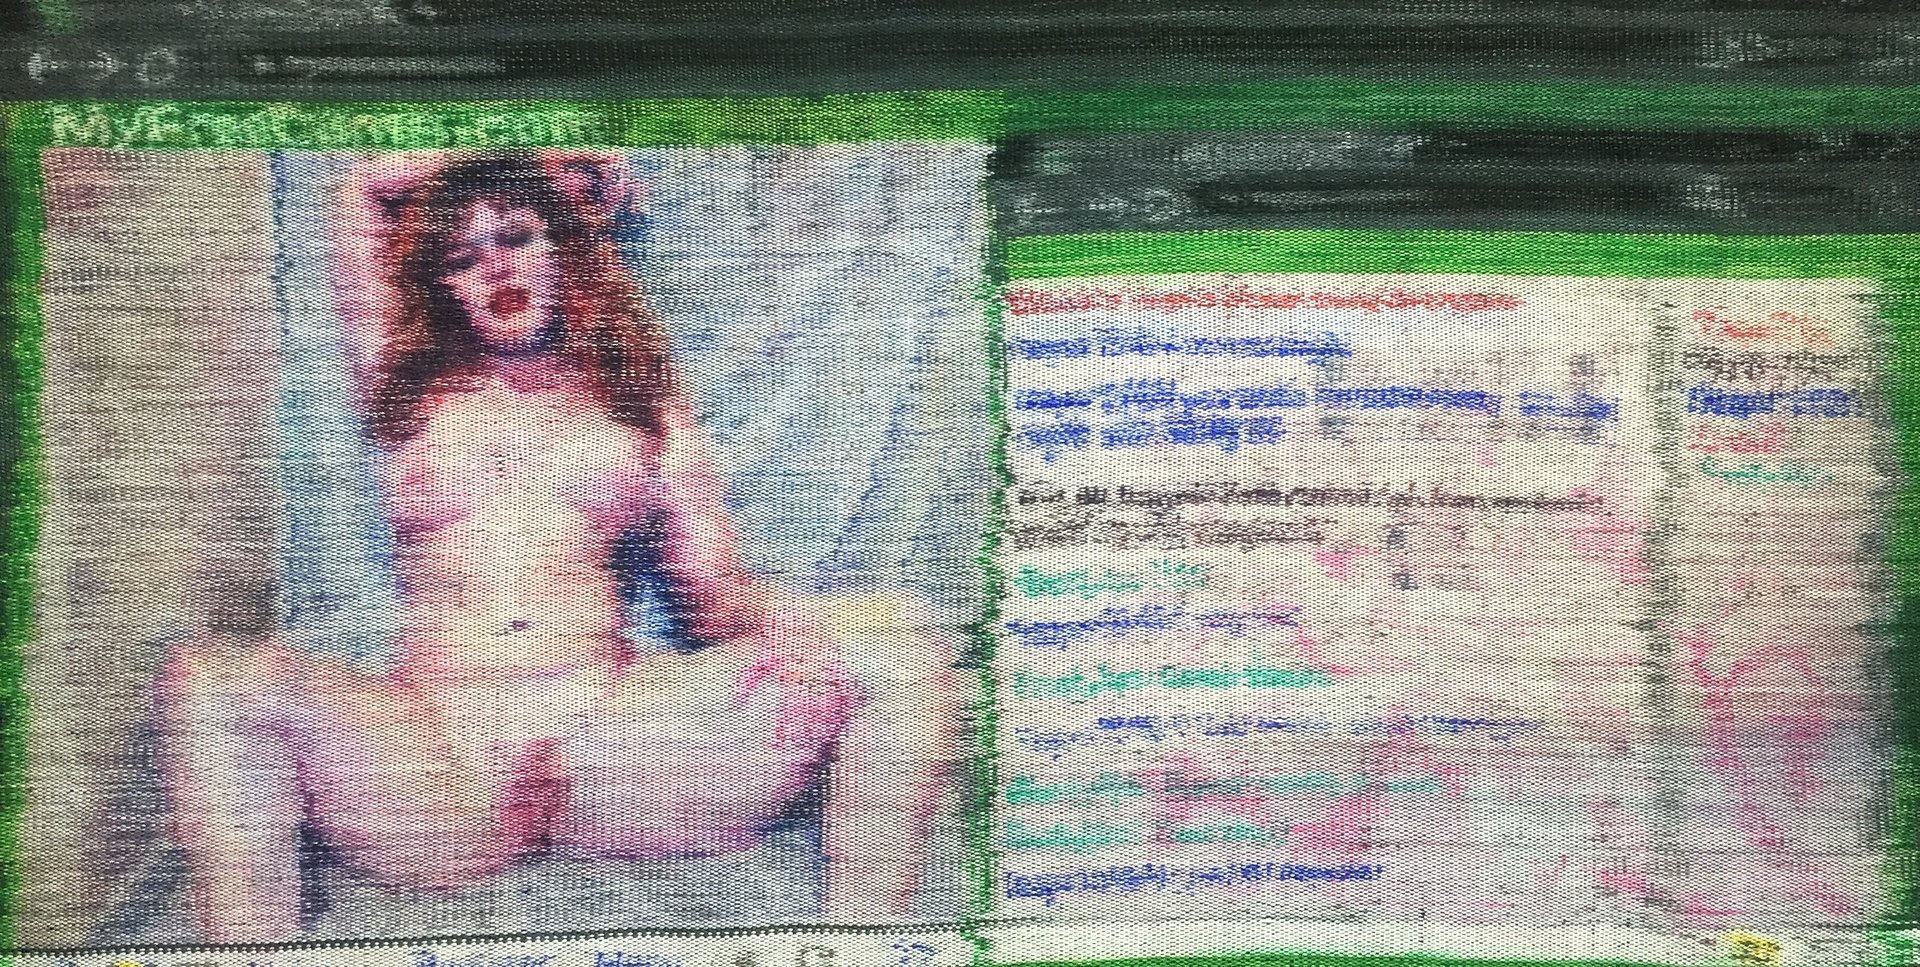 Textile artwork recreating My Cams windows on a computer screen with a frontally nude person on the left and the chat on the right.jpg